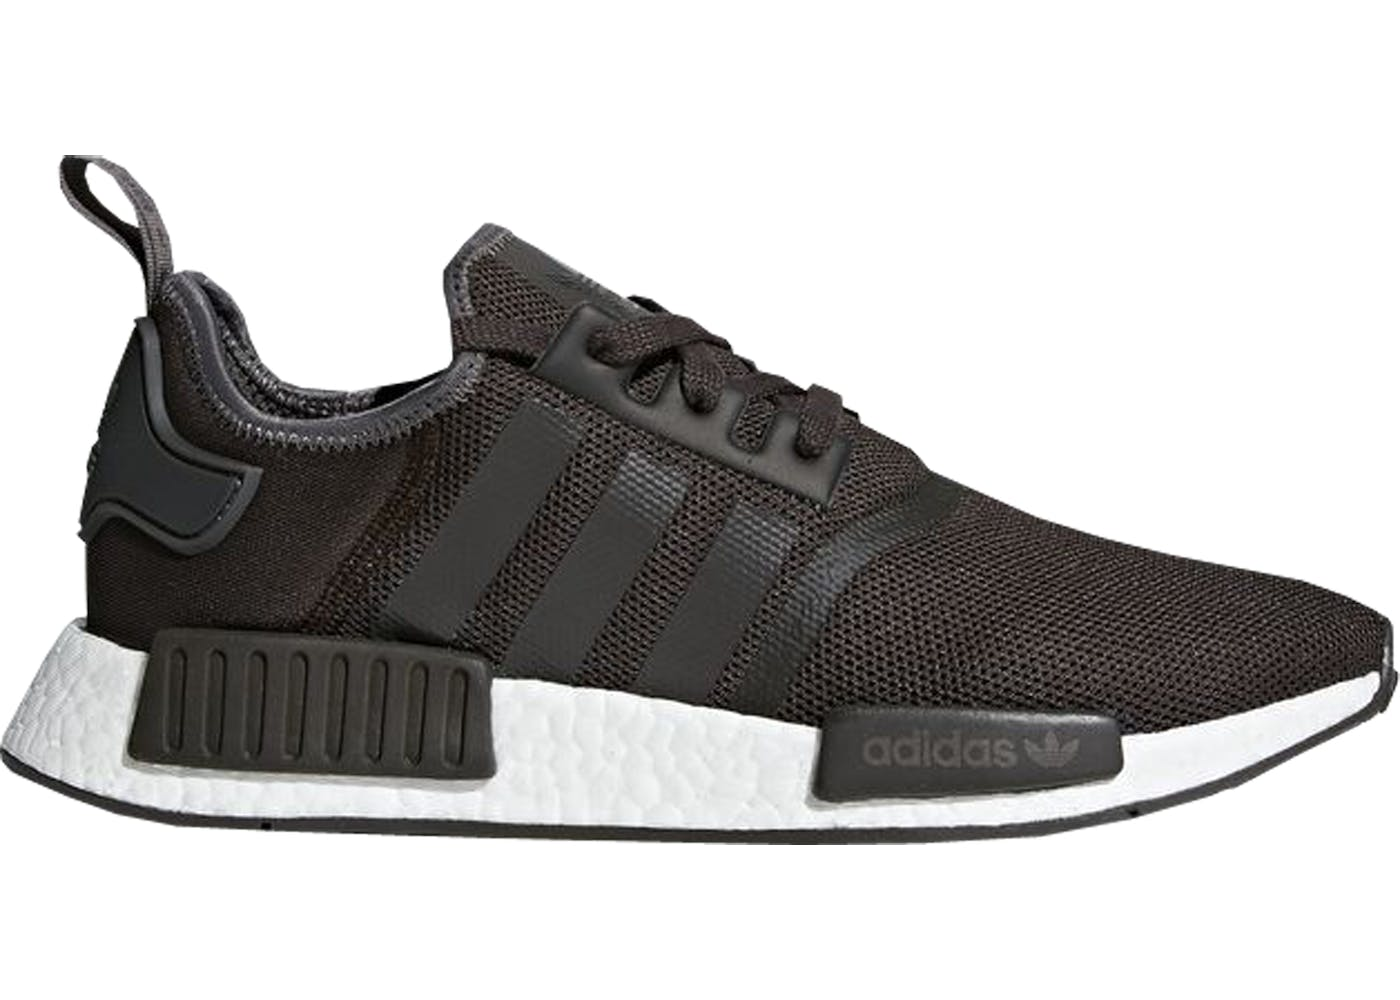 adidas nmd r1 trace grey metallic. Black Bedroom Furniture Sets. Home Design Ideas